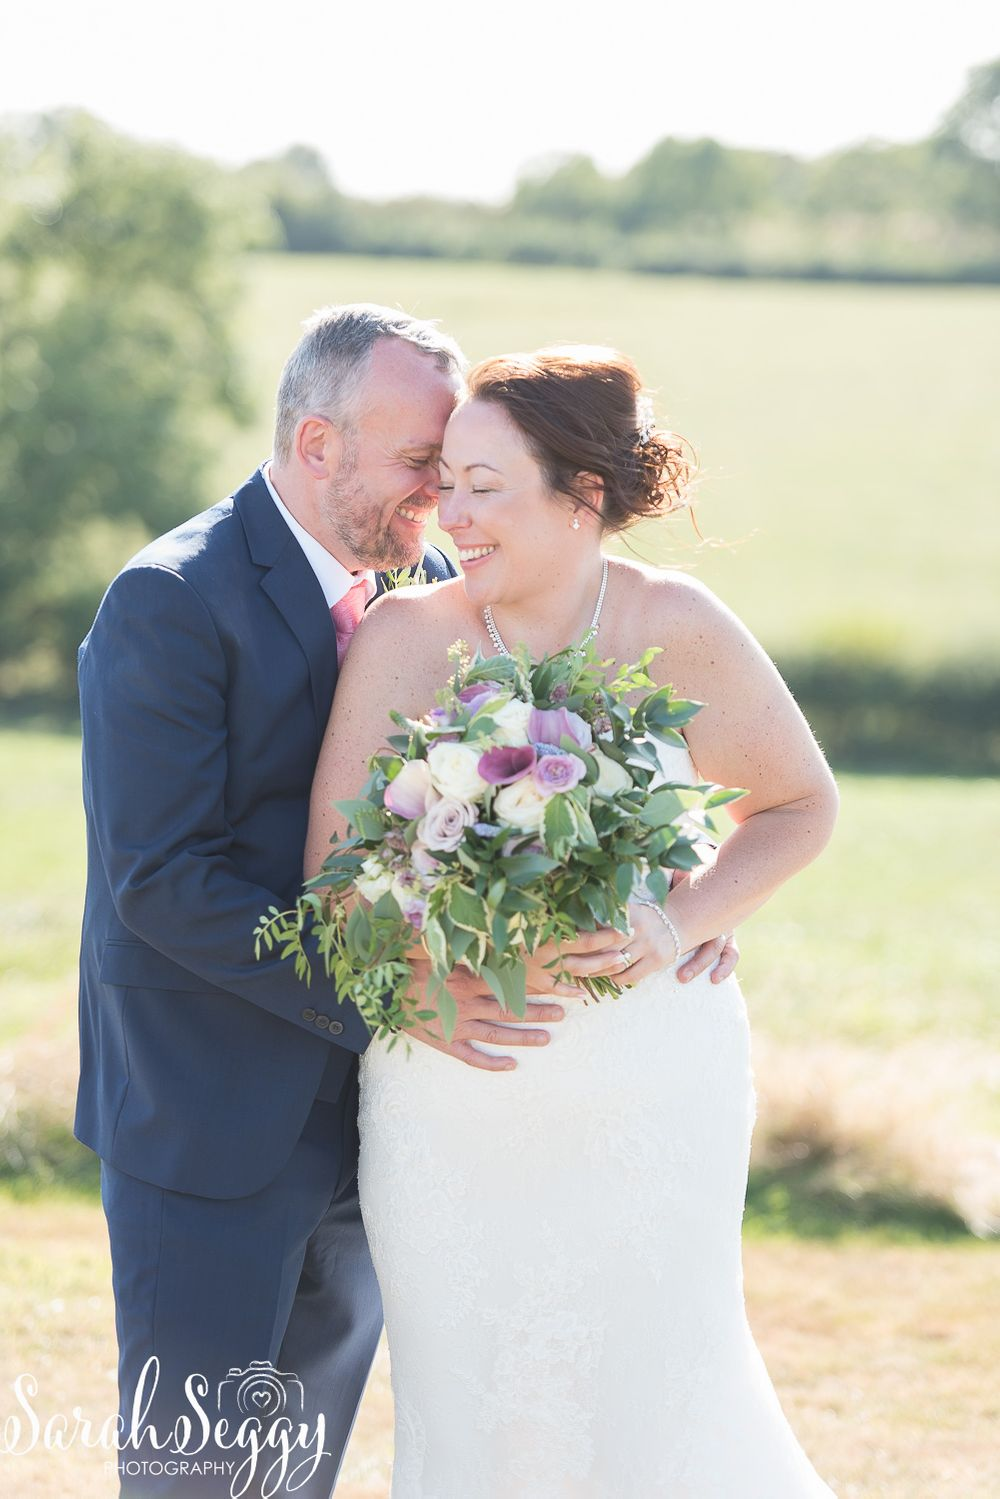 Wedding bride and groom photos Daventry,  Northampton, Rugby